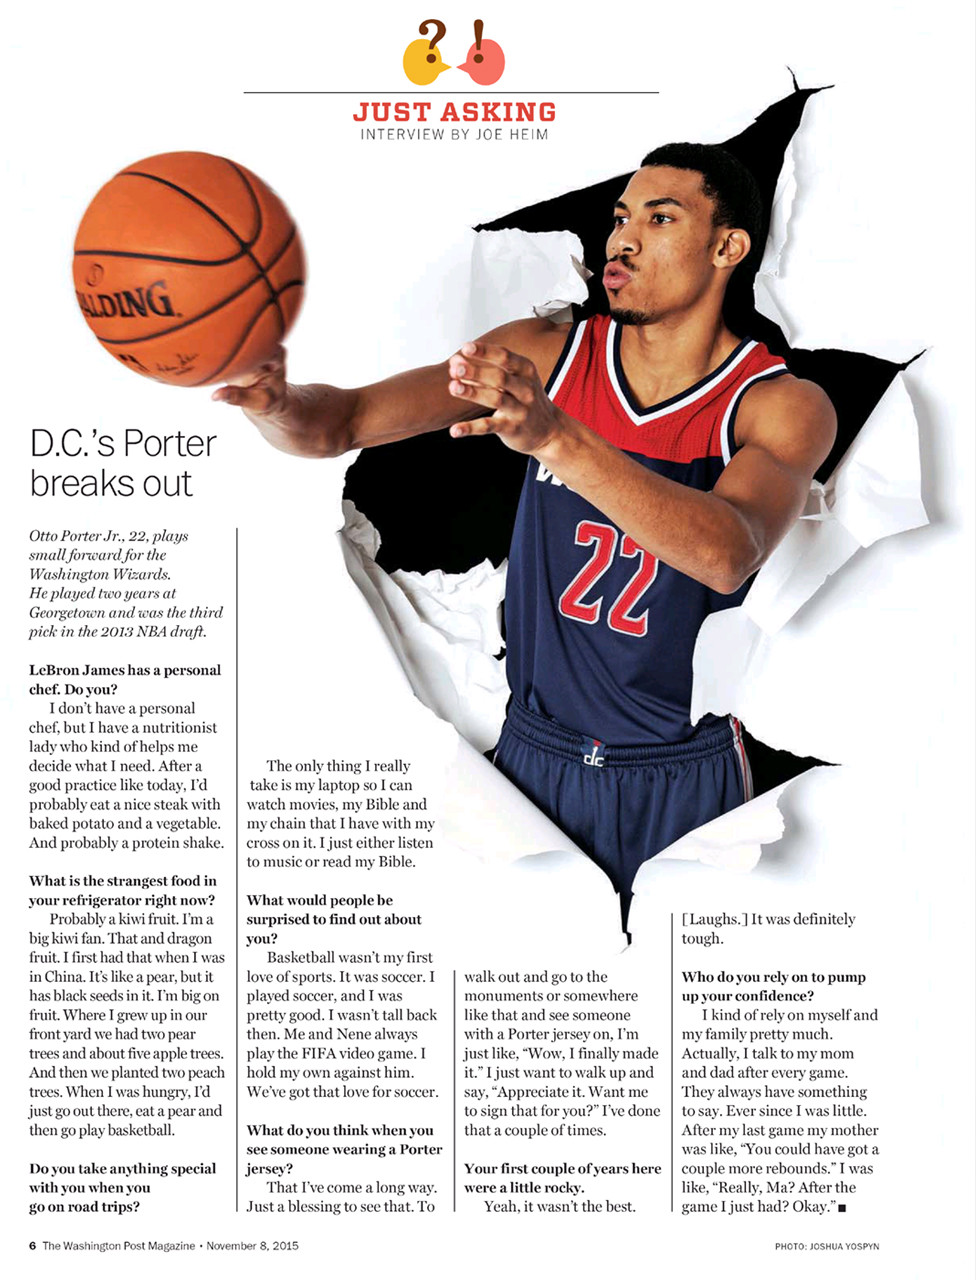 Otto Porter Jr., small forward for the Washington Wizards, for The Washington Post Magazine